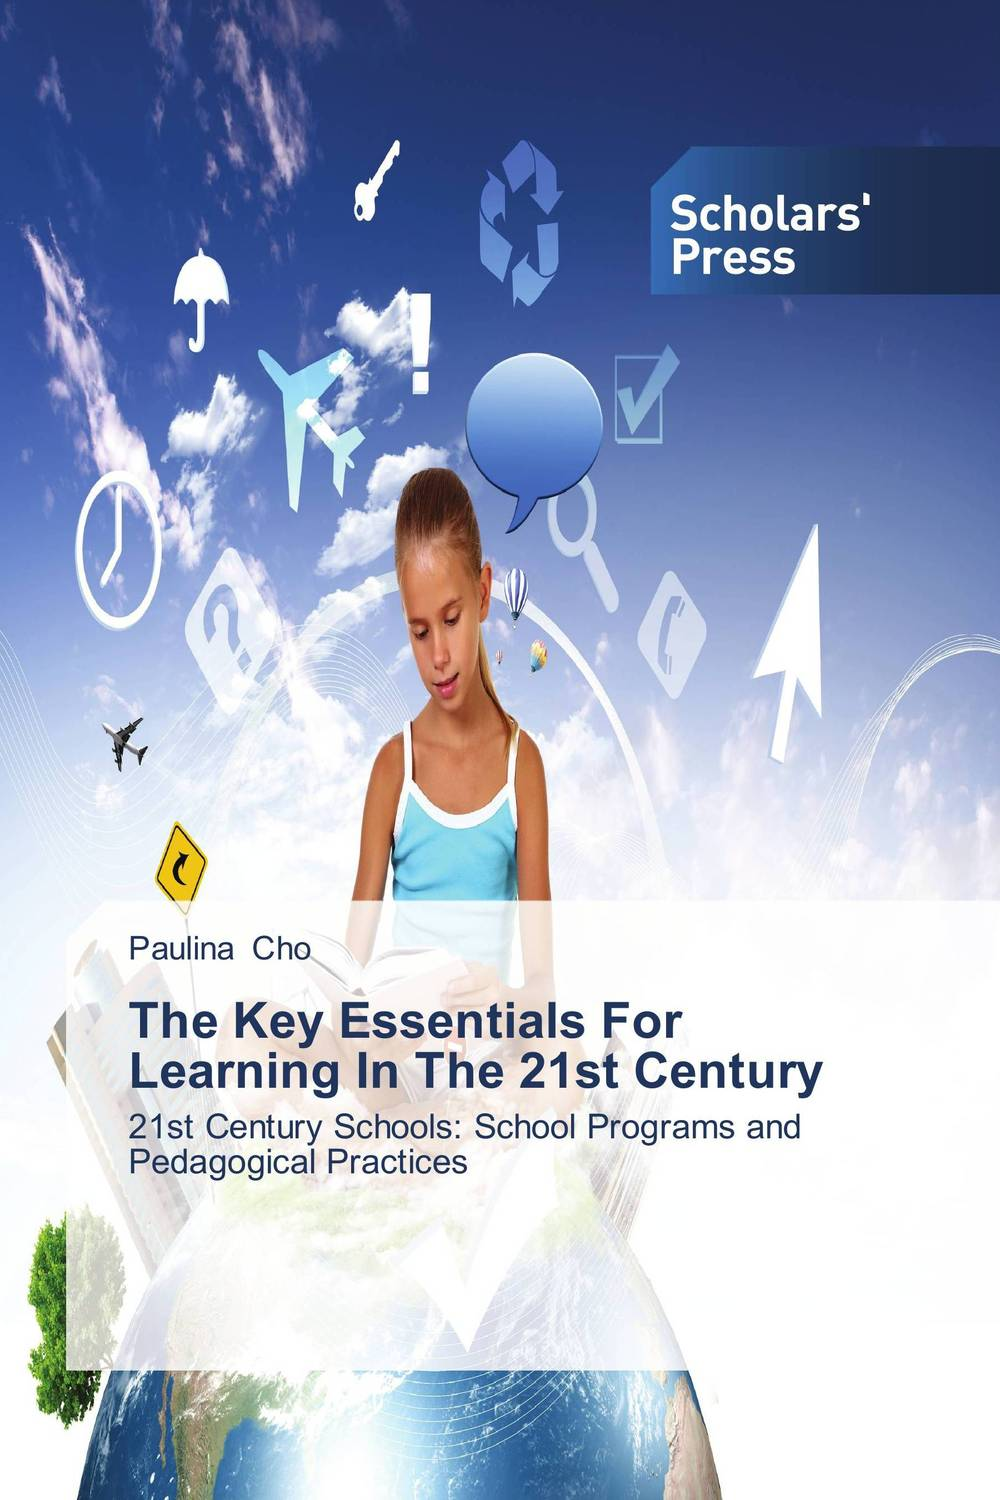 The Key Essentials For Learning In The 21st Century administrative justice in the 21st century